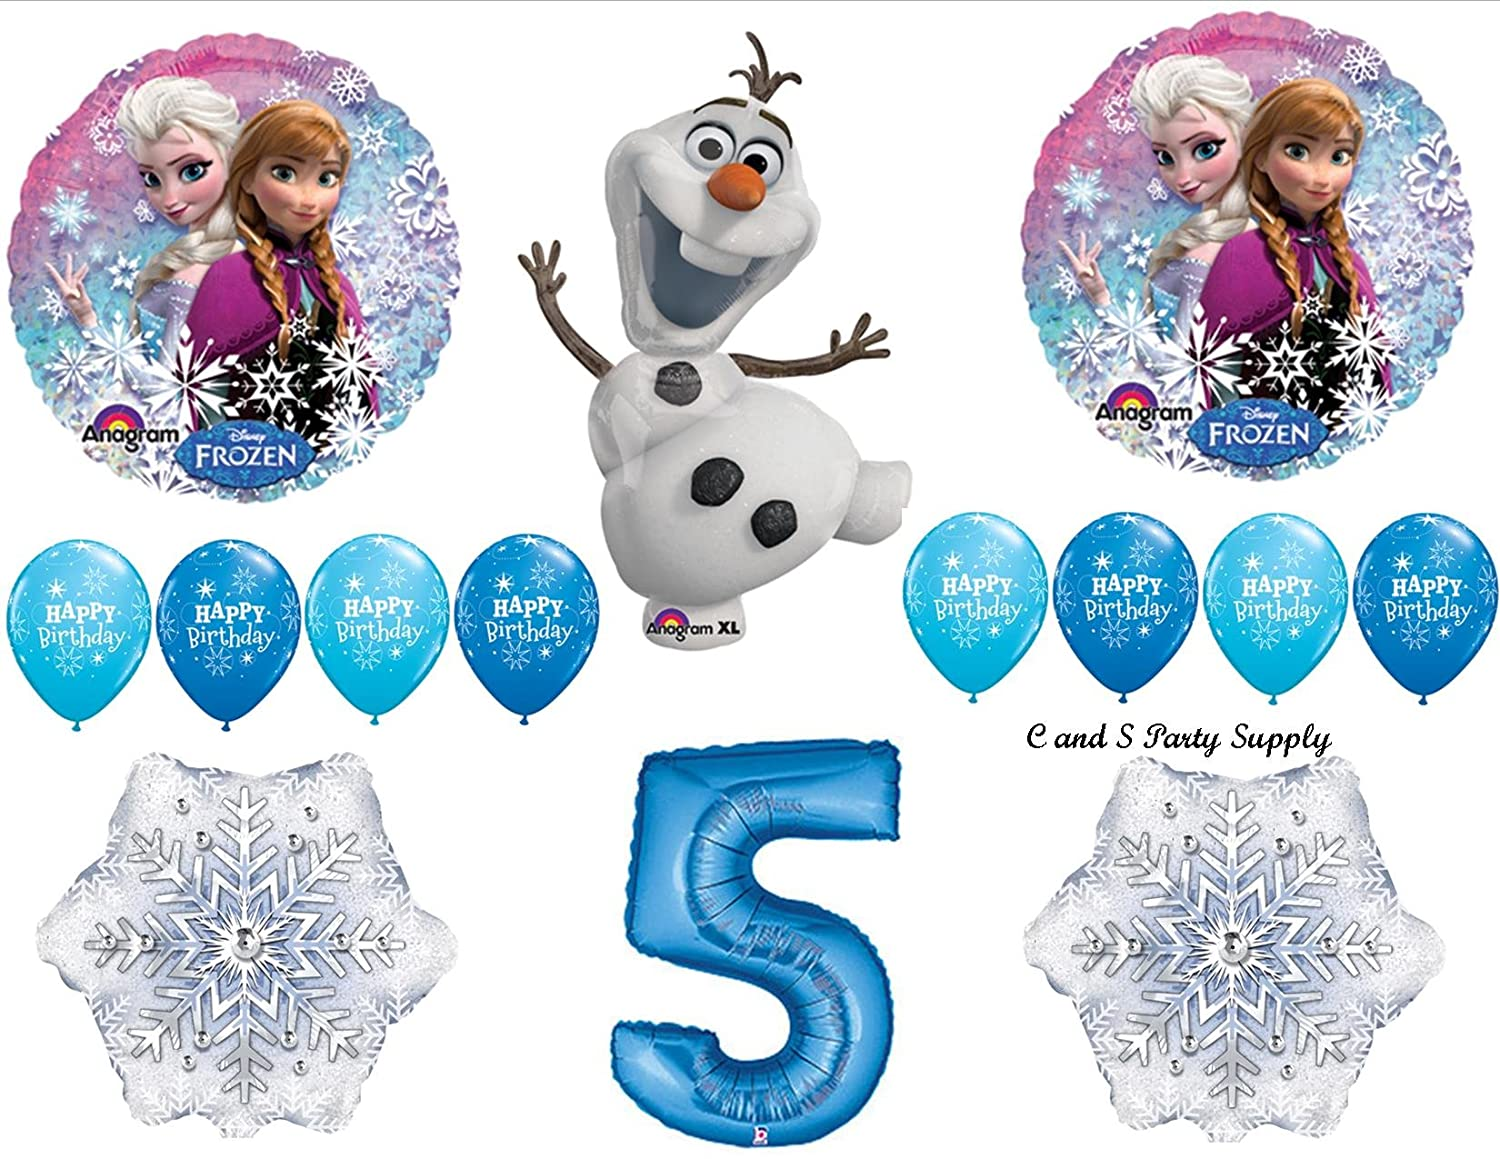 Frozen bluee 5th Disney Movie BIRTHDAY PARTY Balloons Decorations Supplies by Anagram